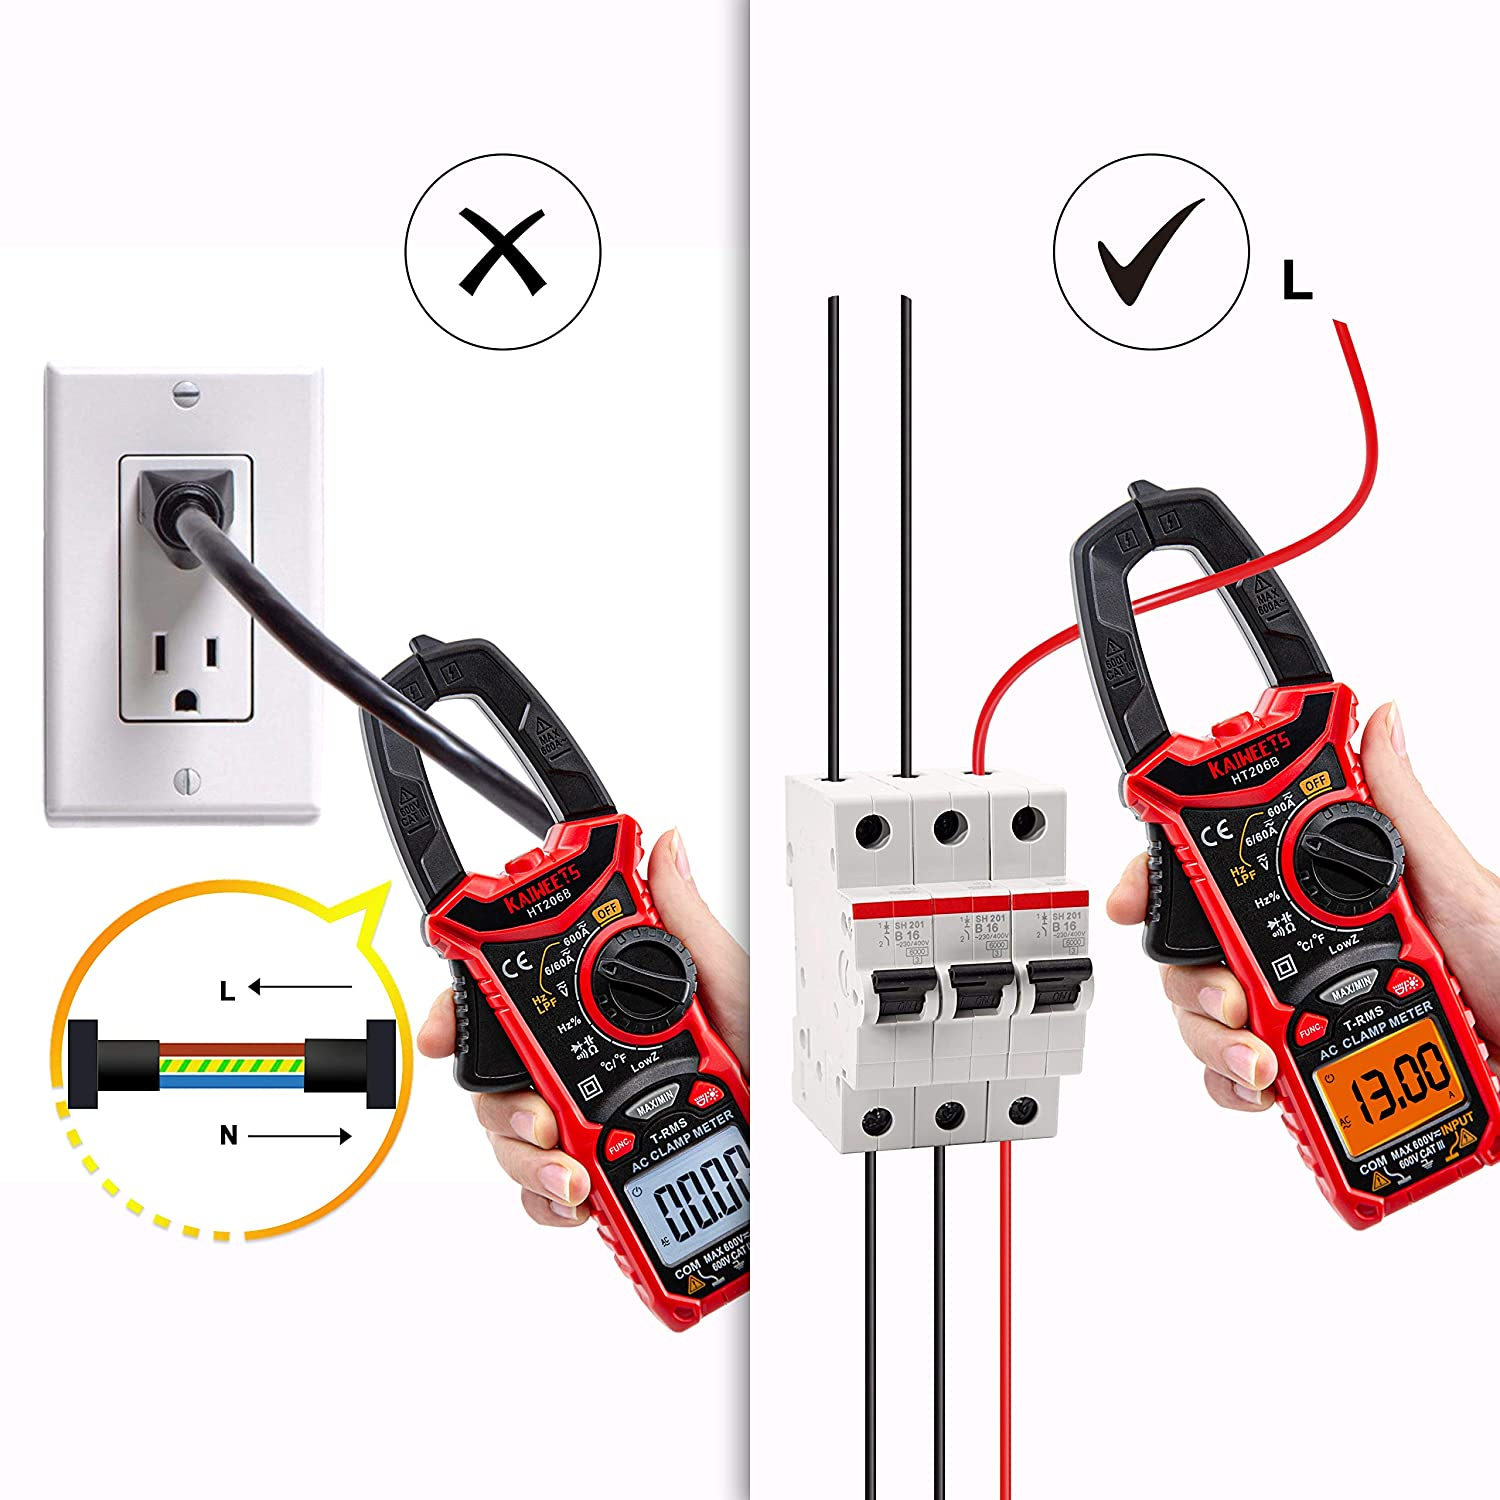 Battery Continuity Voltage KAIWEETS 206B AC Clamp Meter Professional Frequency NCV Resistance Duty T-RMS Autoranging Ampere Meters Measures 600A AC Current Capacitance Diodes 6000 Counts